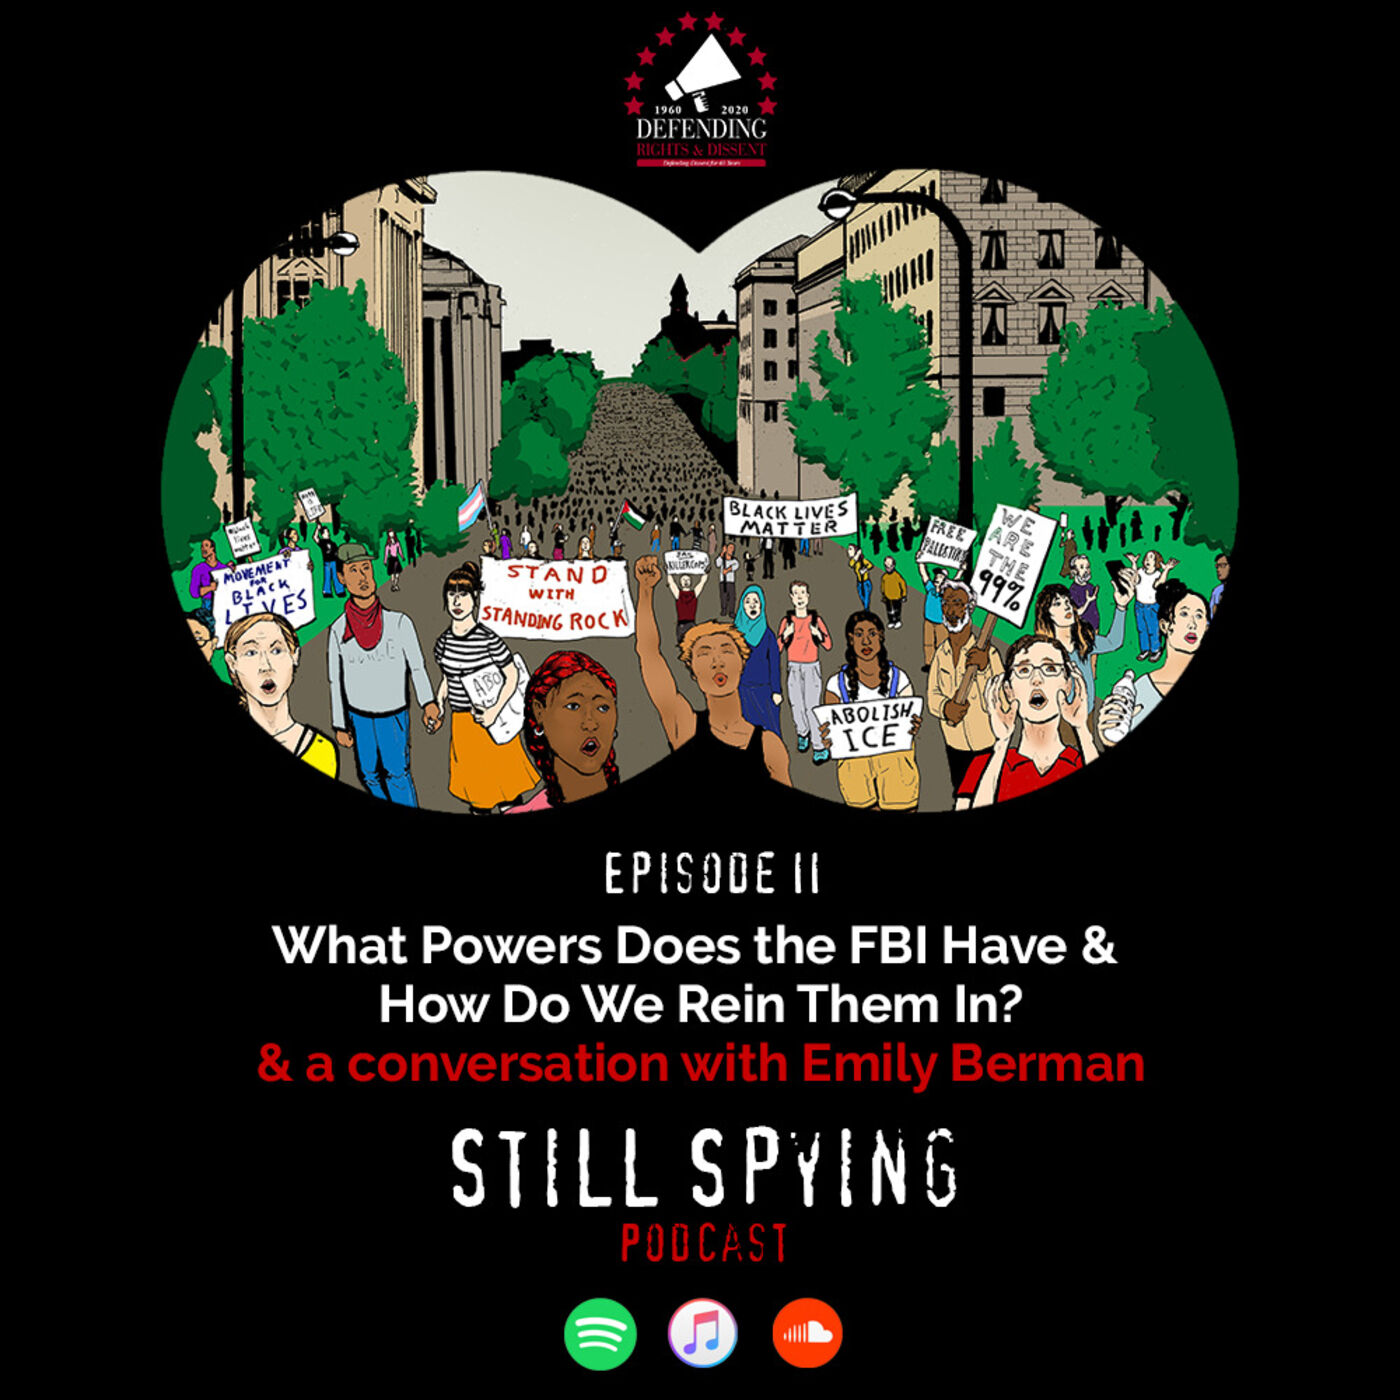 What Powers Does the FBI Have & How Do We Rein Them In? Featuring Emily Berman